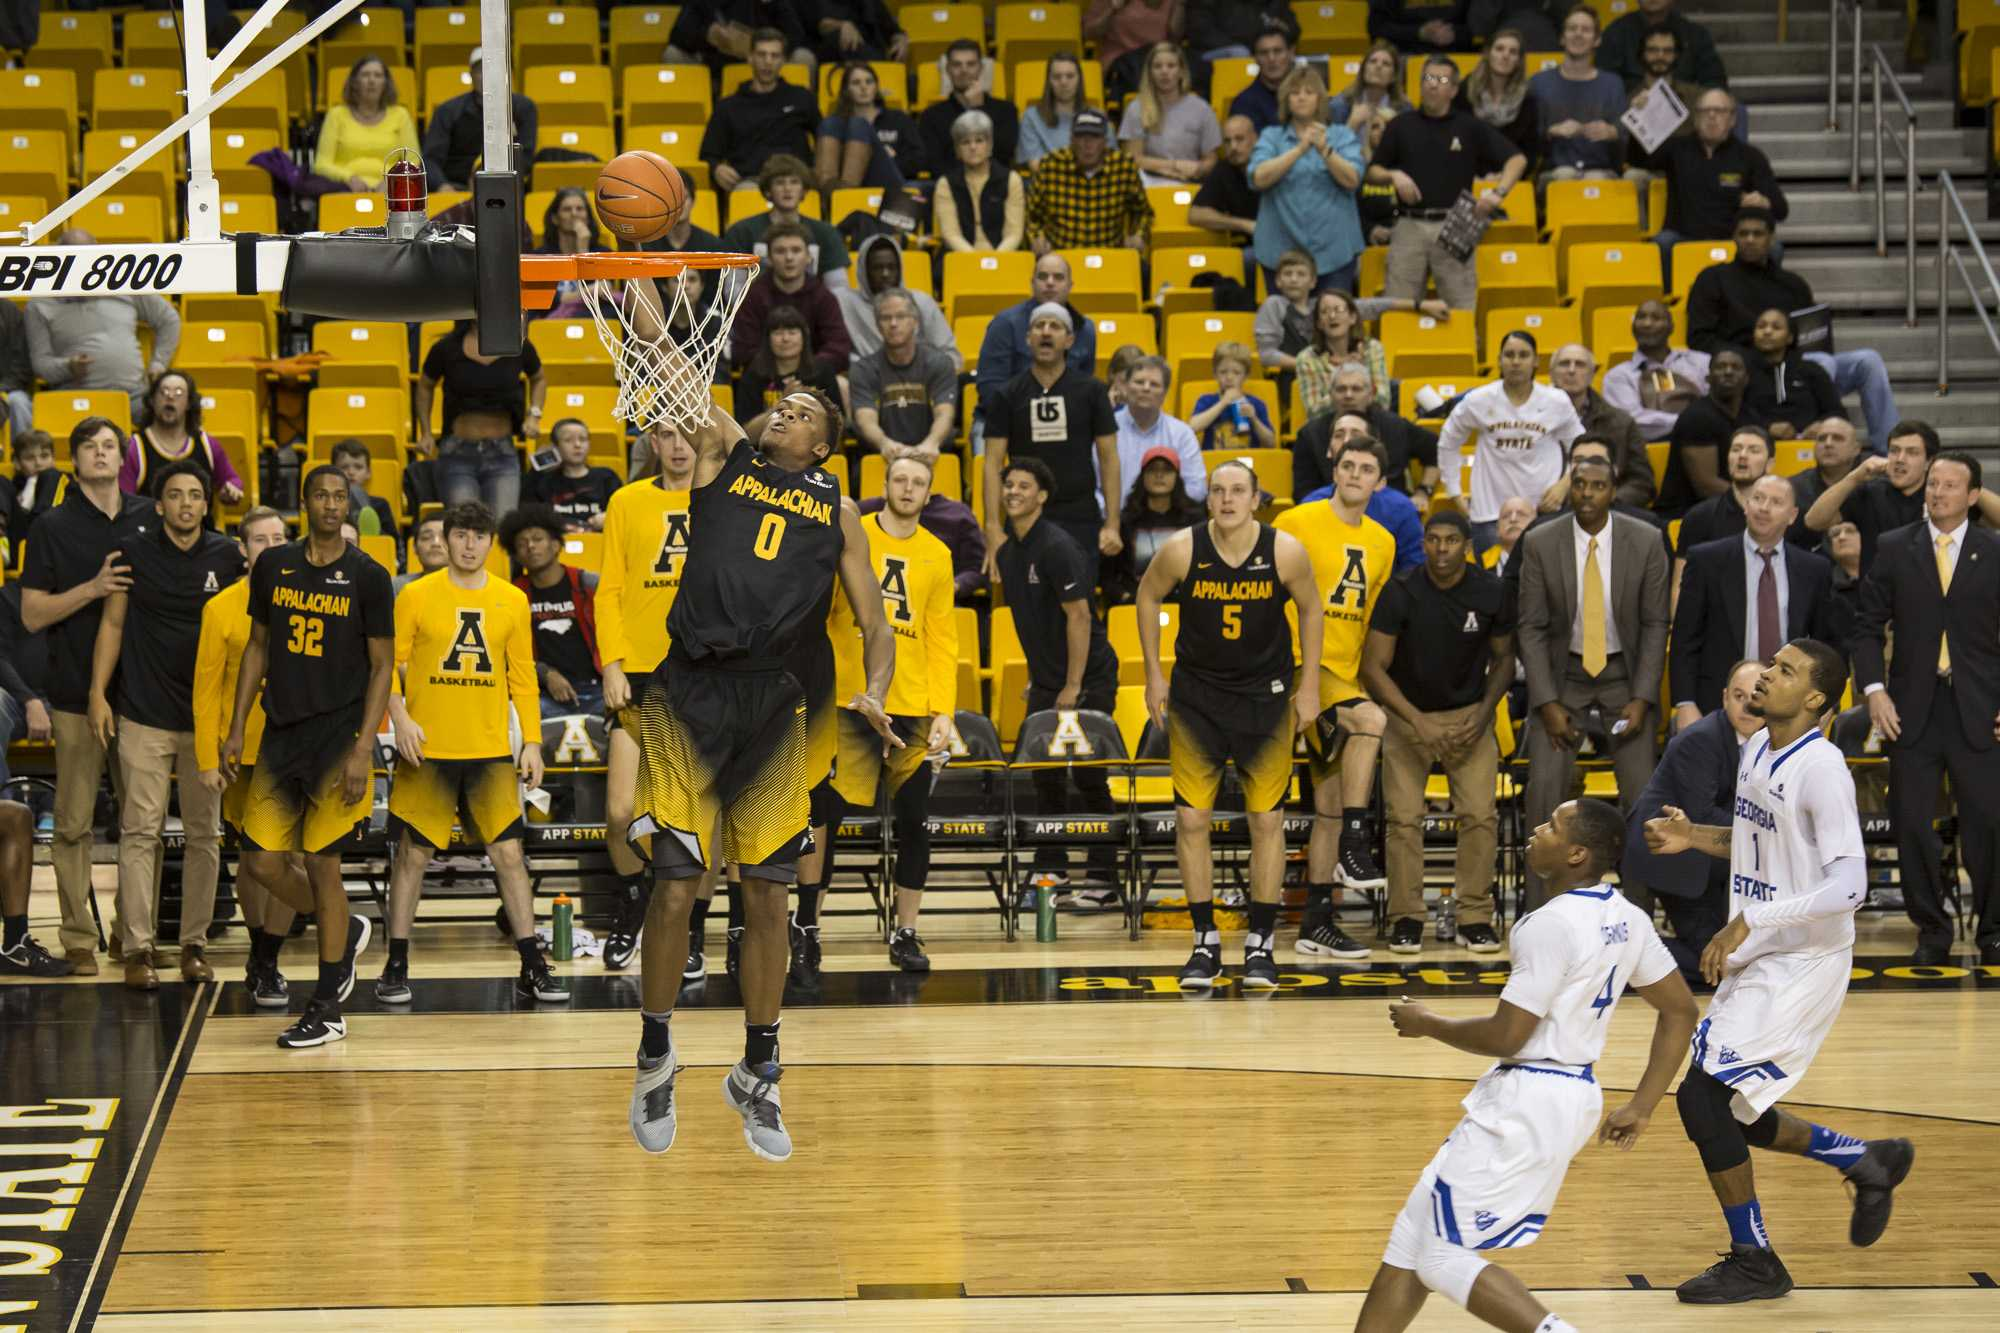 App State's Isaac Johnson extends the Mountaineer's lead with a dunk off of a Georgia State turnover.